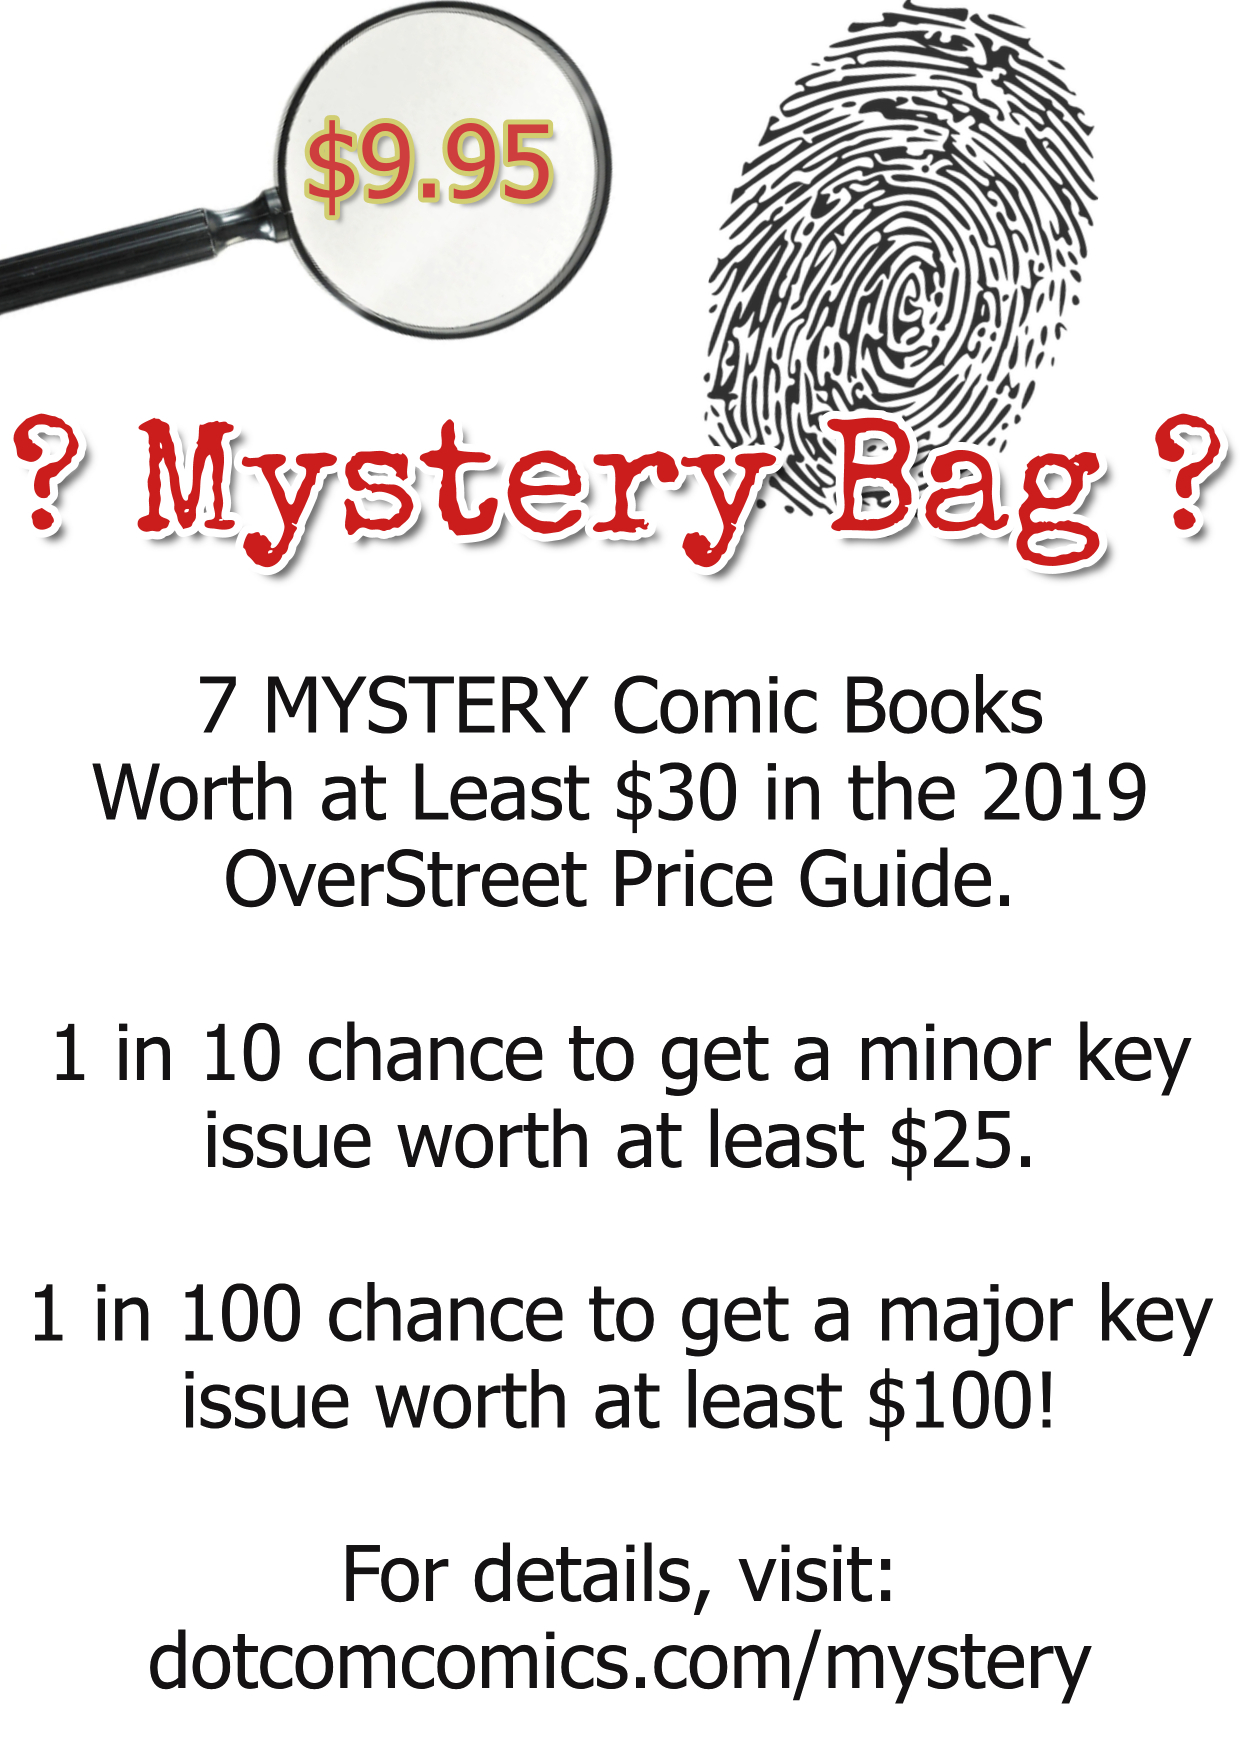 Comic Book Mystery Bags. 7 comics for $9.95 with a one in ten chance of a minor key issue and a 1 in 100 chance of a major key!